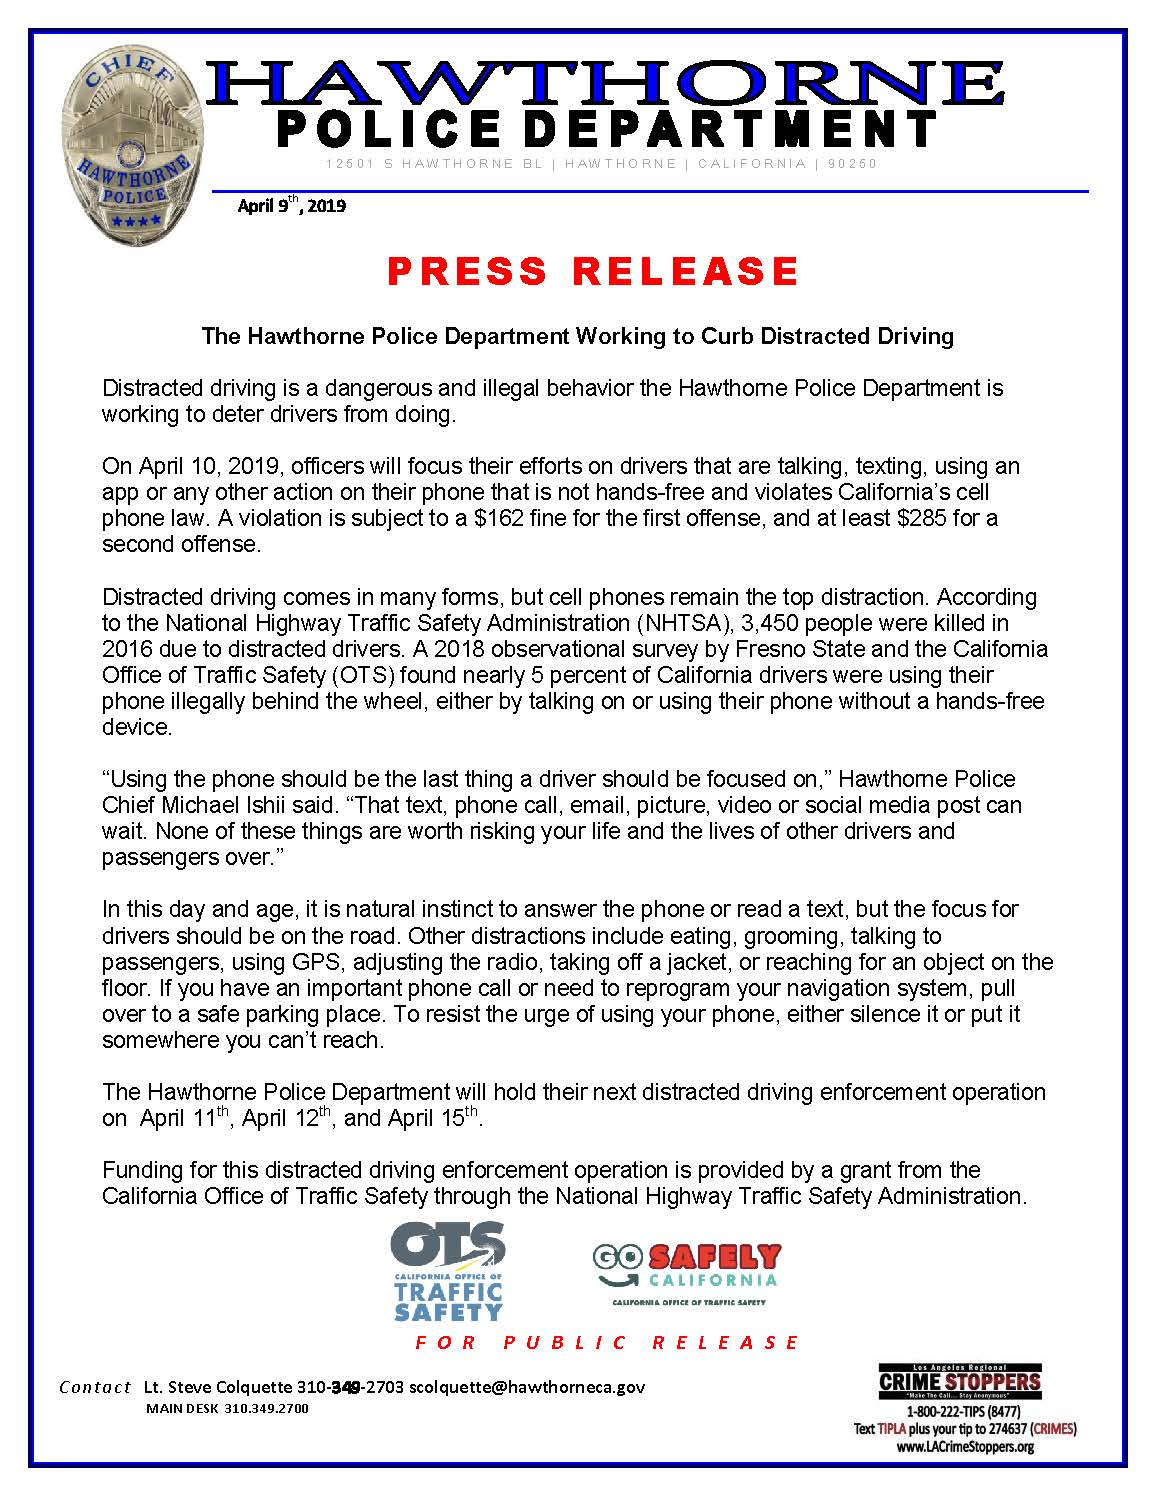 Curb Distracted Driving — Hawthorne police